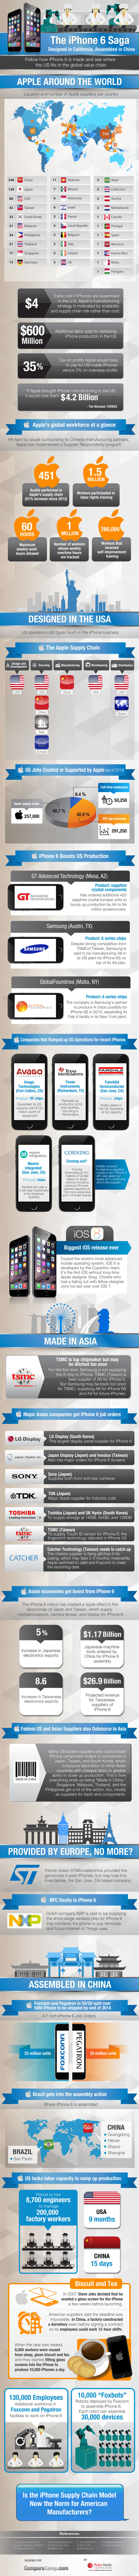 Secrets of iPhone Manufacturing Proces: How And Where It's Made